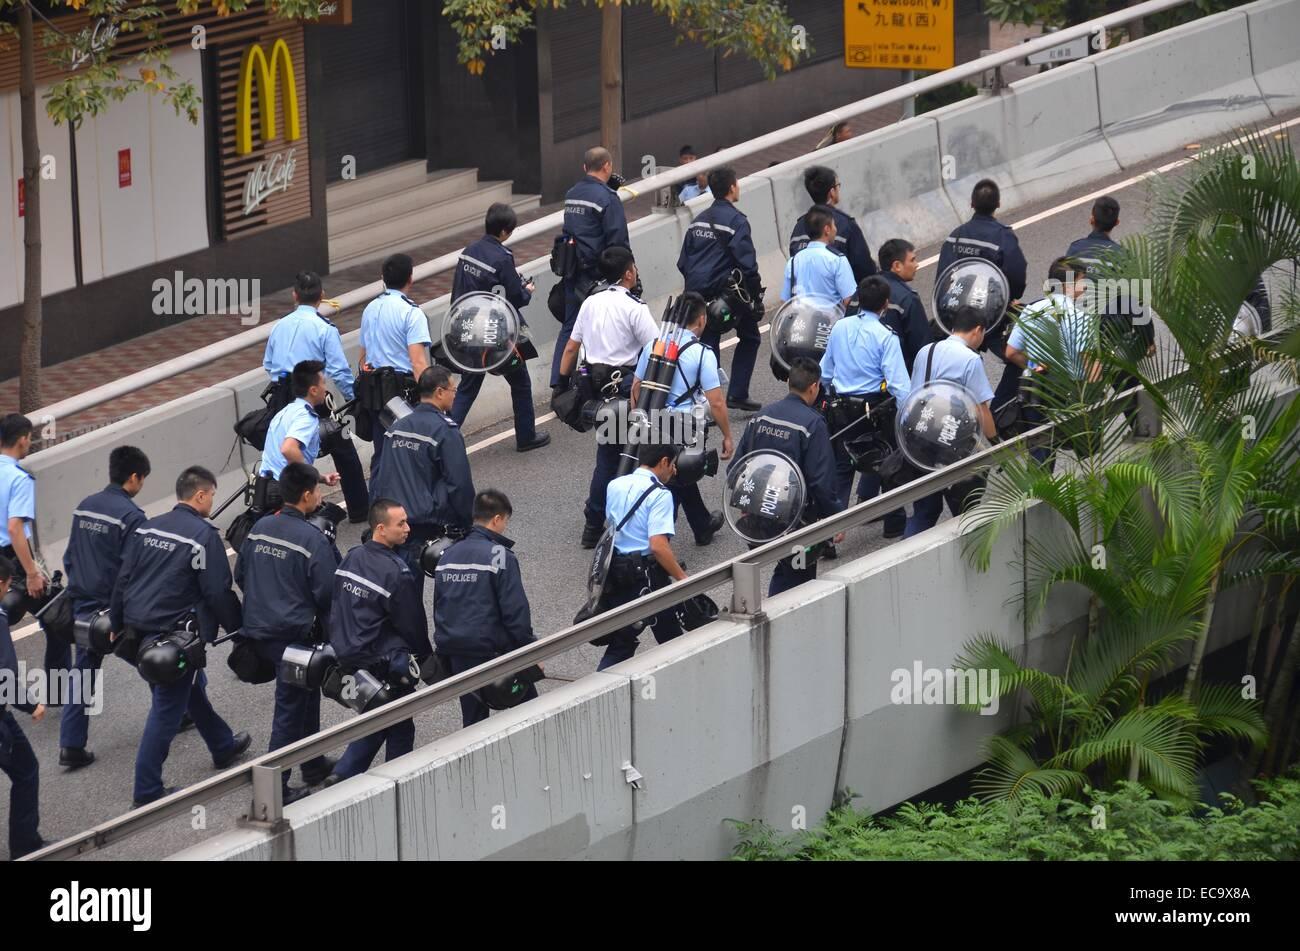 Hong Kong, China. 11th December, 2014. After 74 days of the Occupy Hong Kong protest, police enact a court injunction - Stock Image